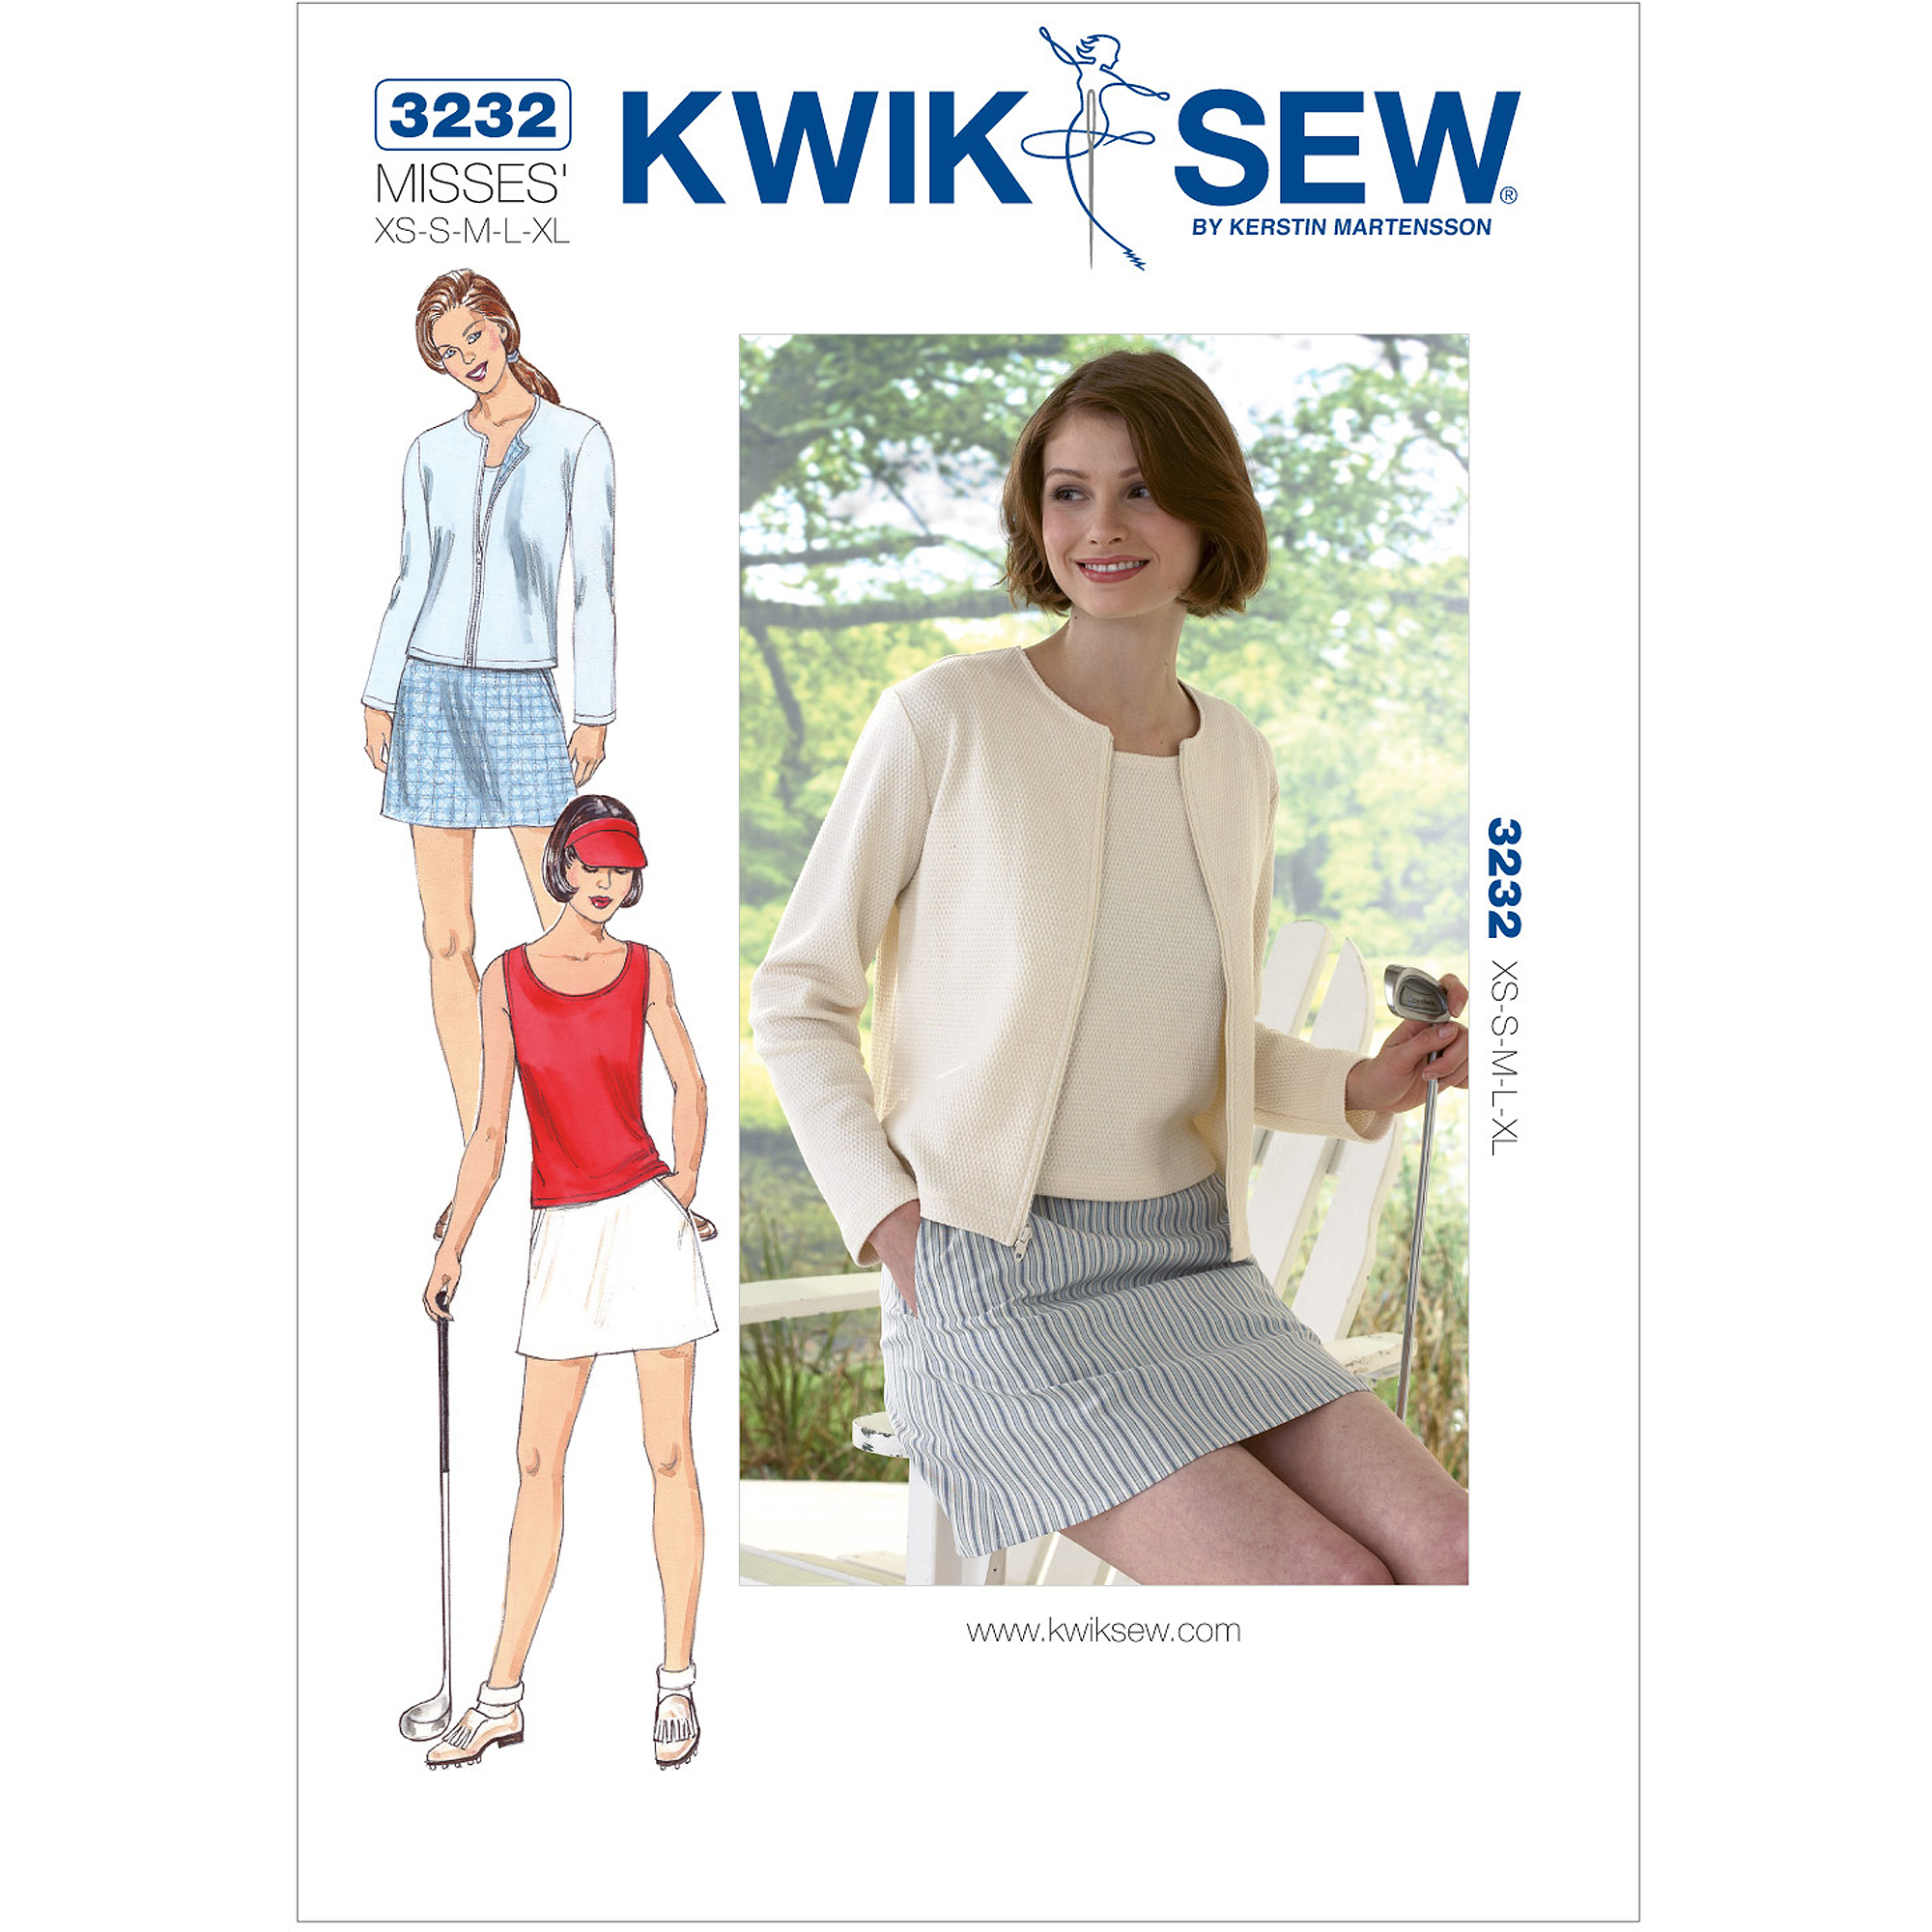 Kwik Sew Pattern Skort, Top and Cardigan, (XS, S, M, L, XL)